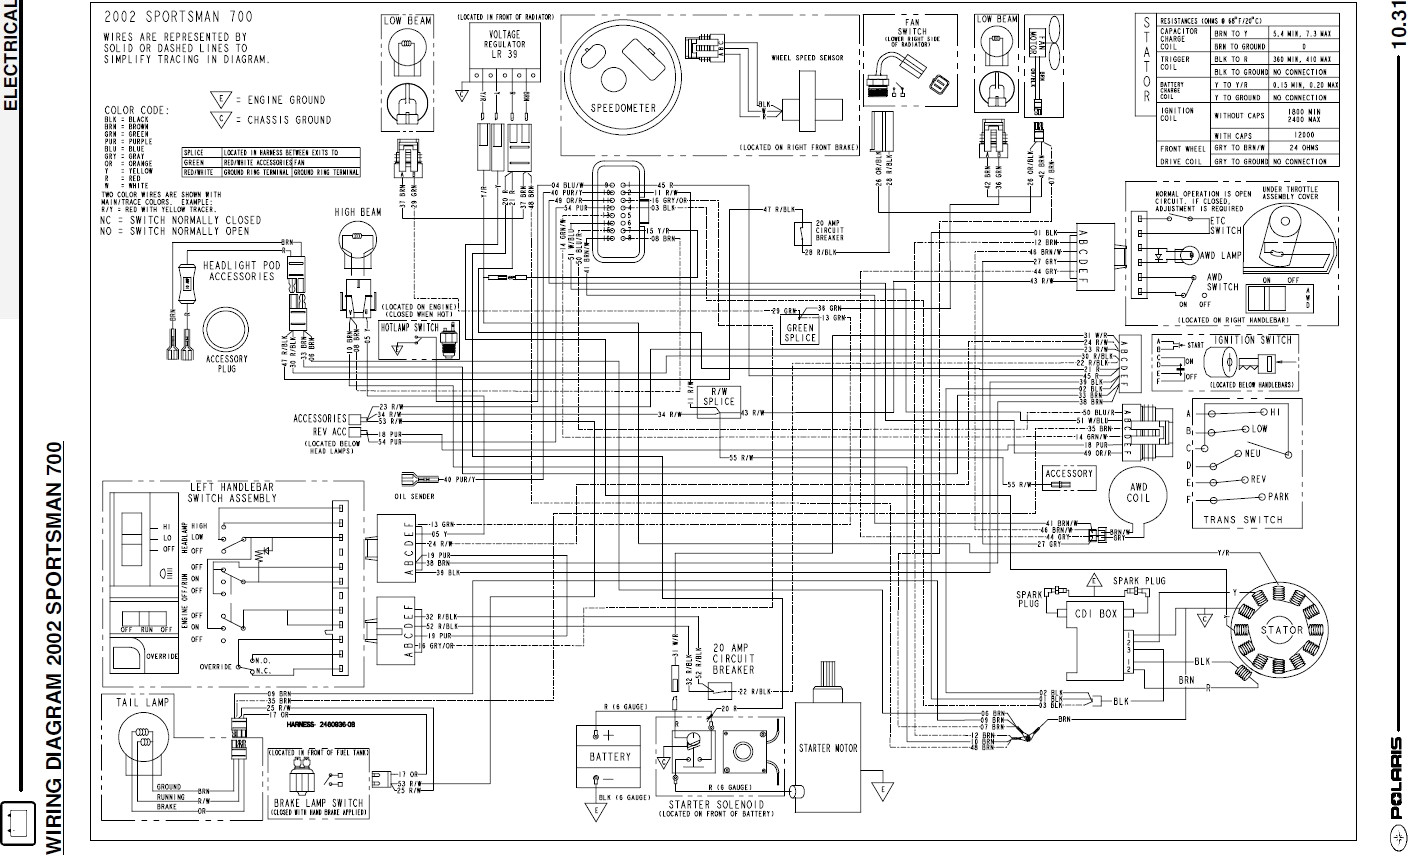 6DFE5 2004 Polaris Sportsman 600 Wiring Diagram | Wiring LibraryWiring Library